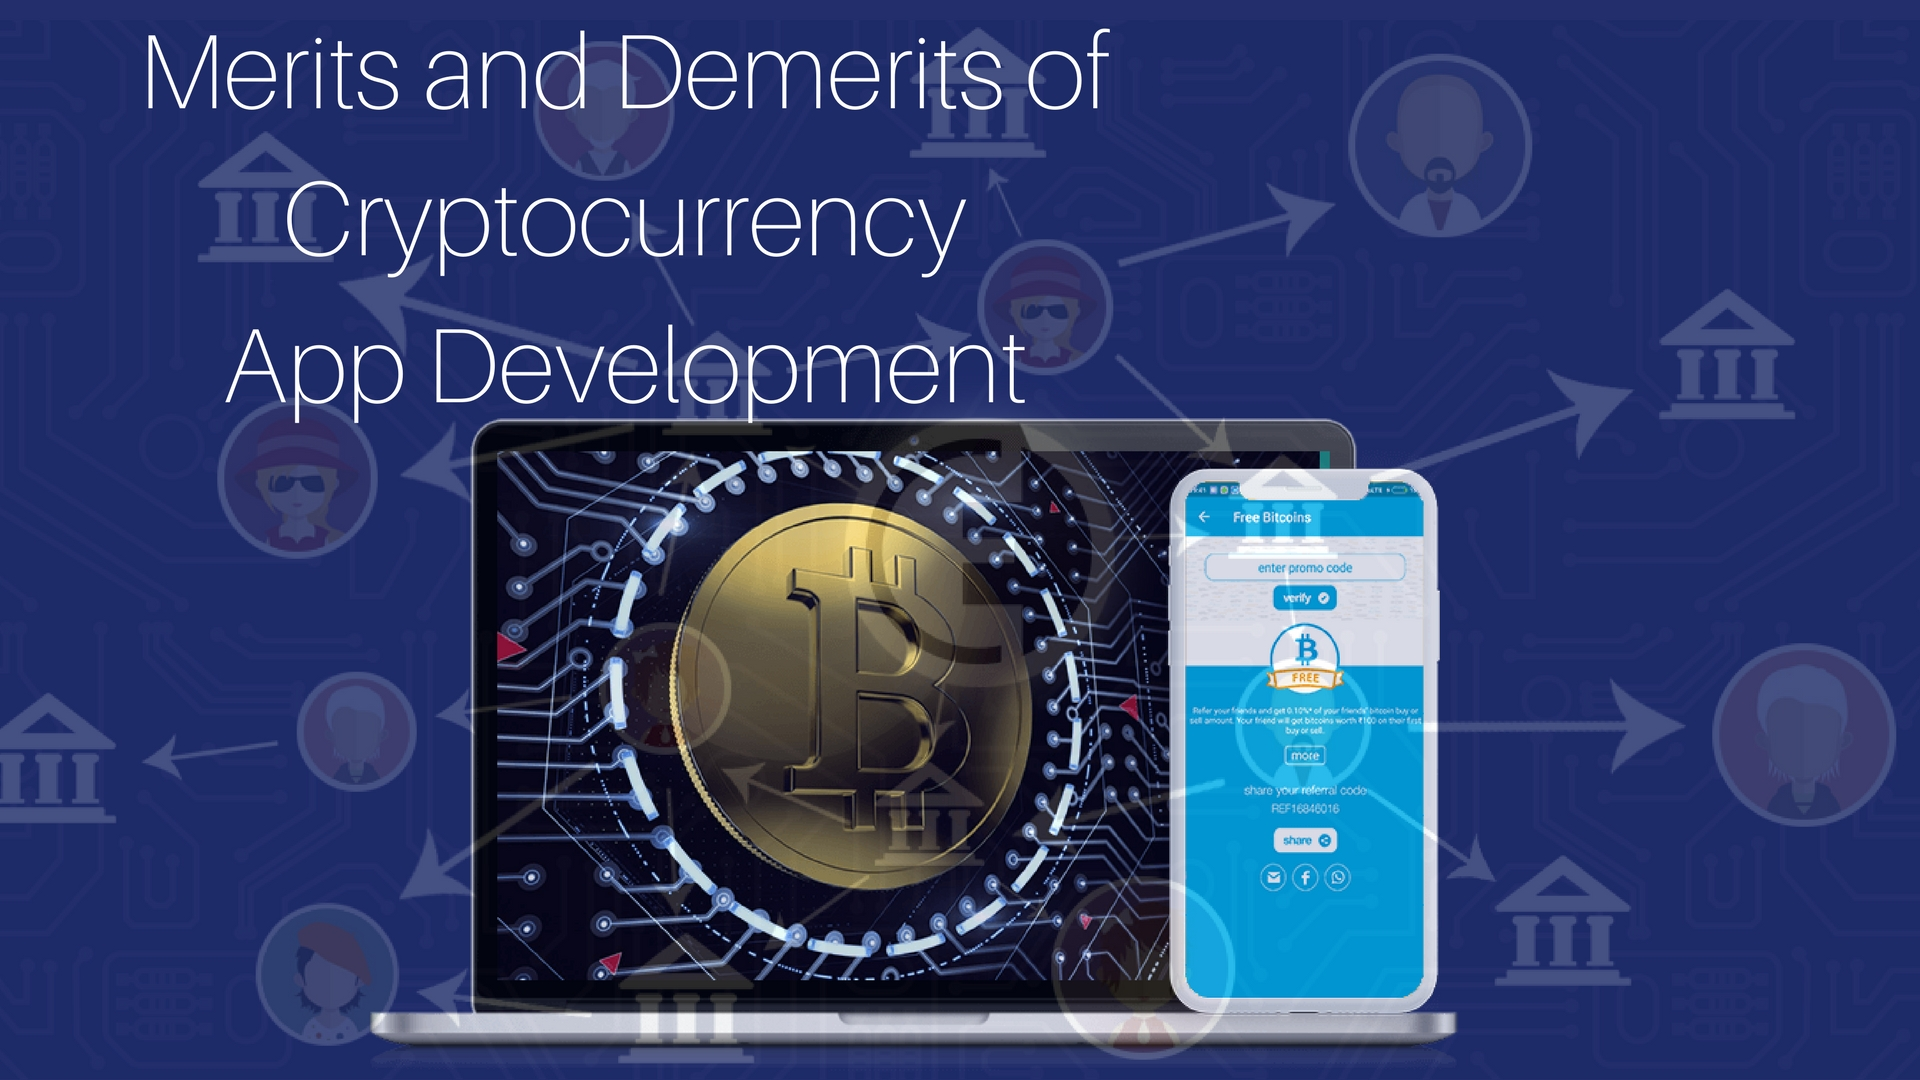 How Worth To Invest In Cryptocurrency App Development